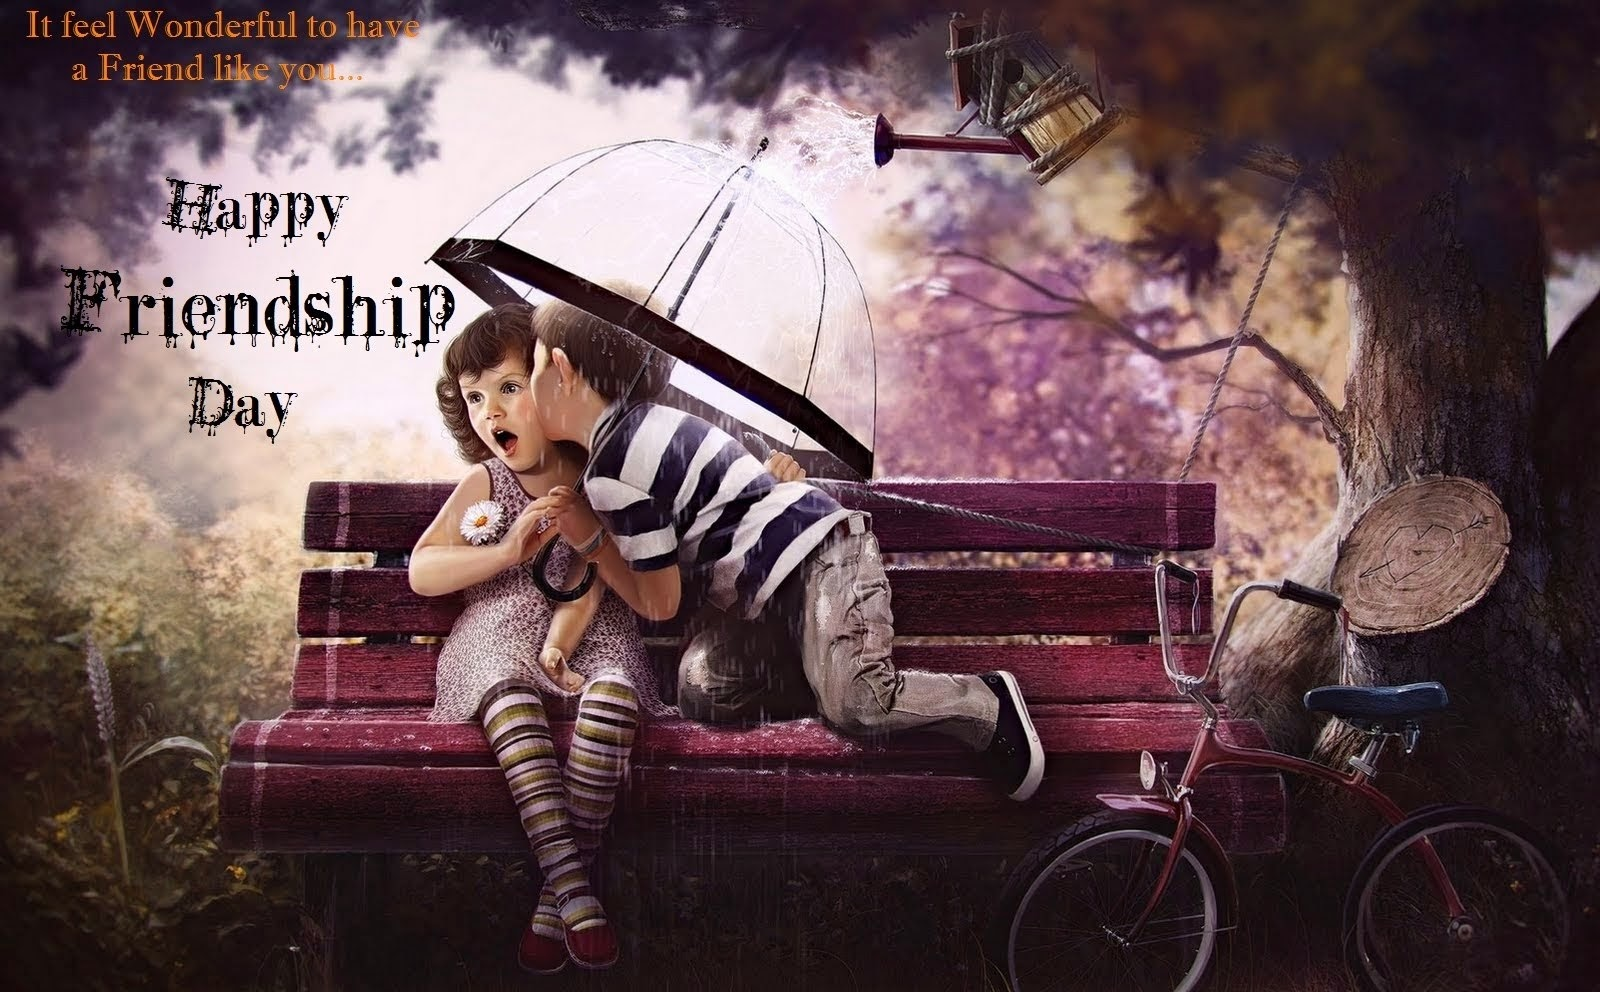 Wish-you-happy-friendship-day-HD